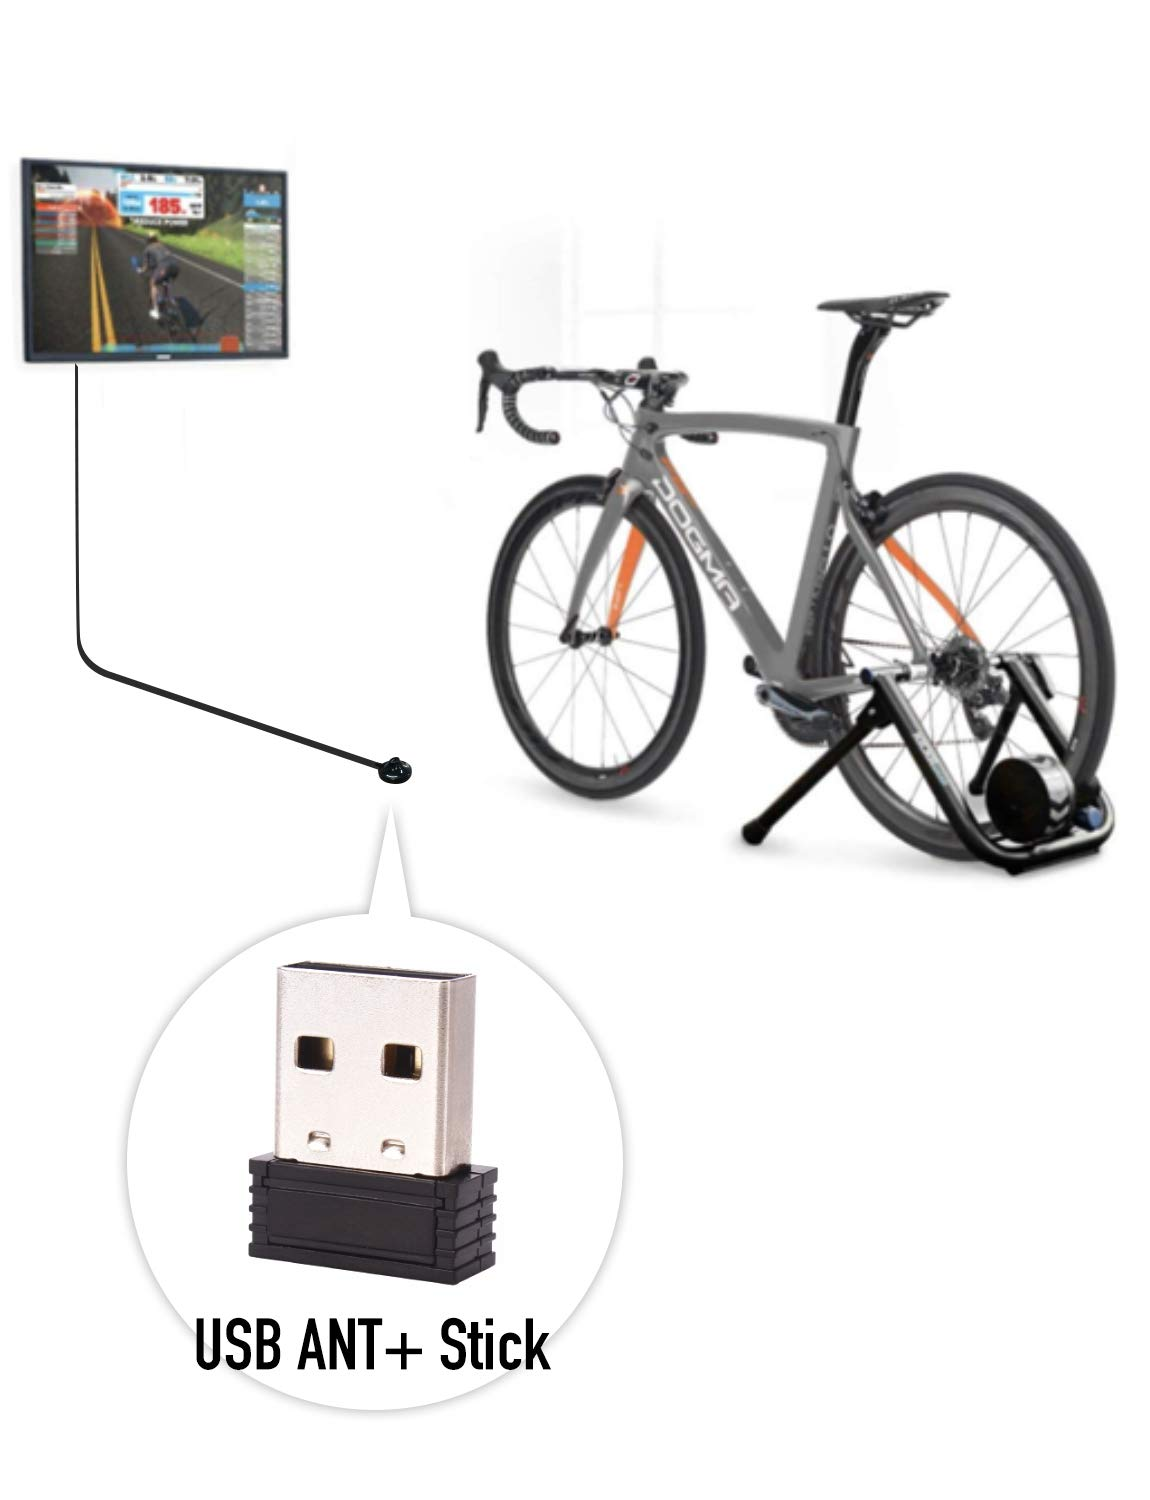 CooSpo ANT+ USB Stick Dongle Adapter with Extended USB 2.0 Cable 6.56Ft Suit for Cycling Indoor Compatible with Zwift Strava and More Apps